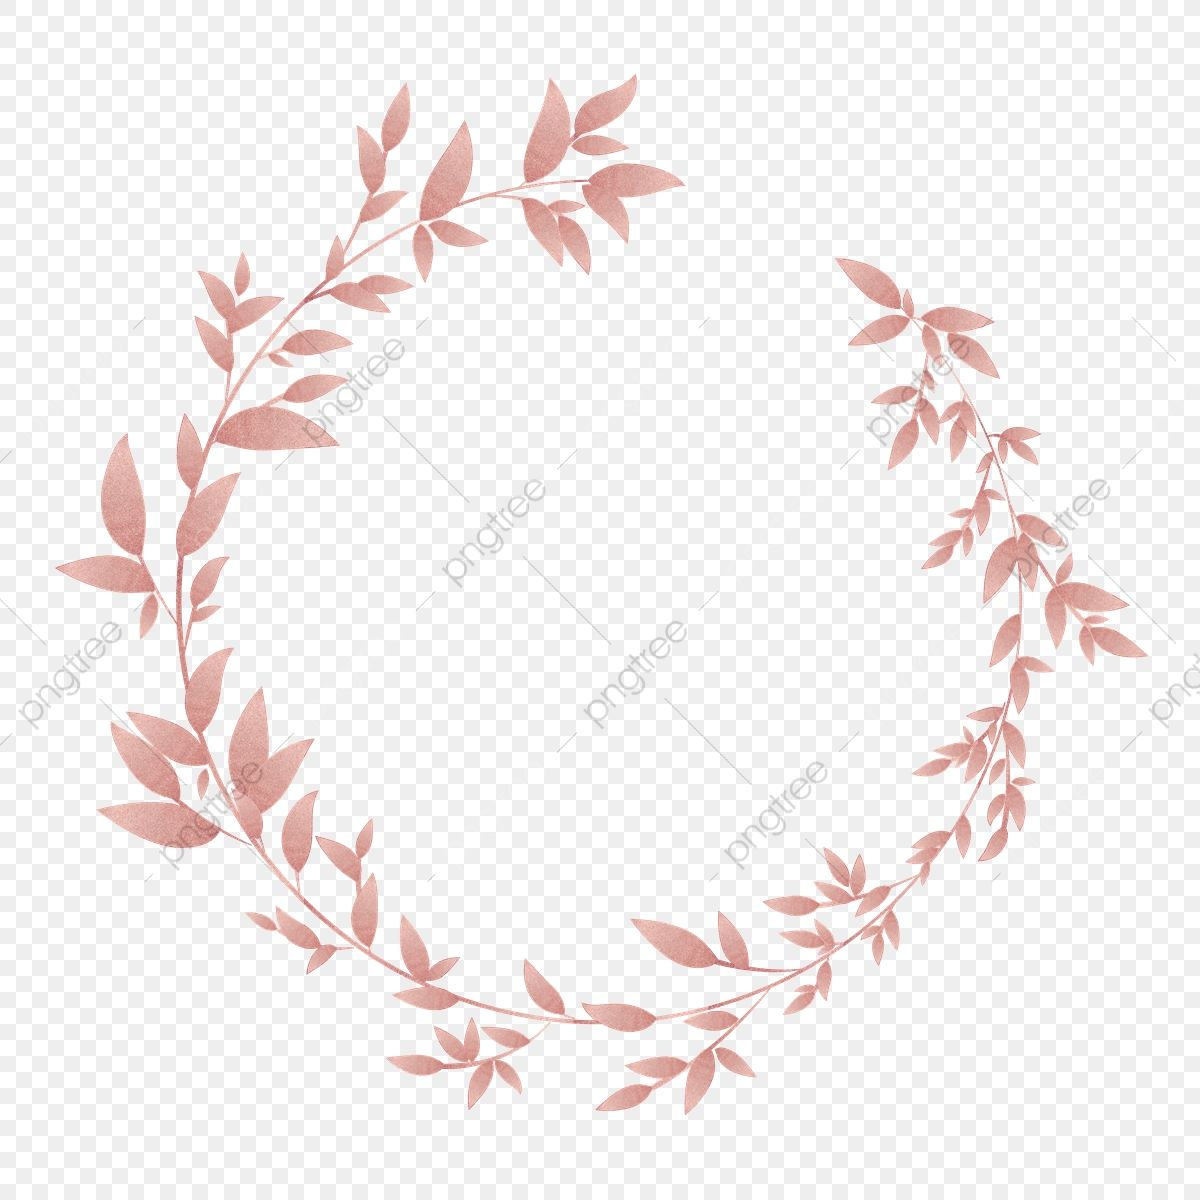 Pink Gold Floral Wreath Border Floral Clipart Luxurious Shading Png And Vector With Transparent Background For Free Download Floral Wreath Watercolor Painted Floral Wreath Pink Floral Background